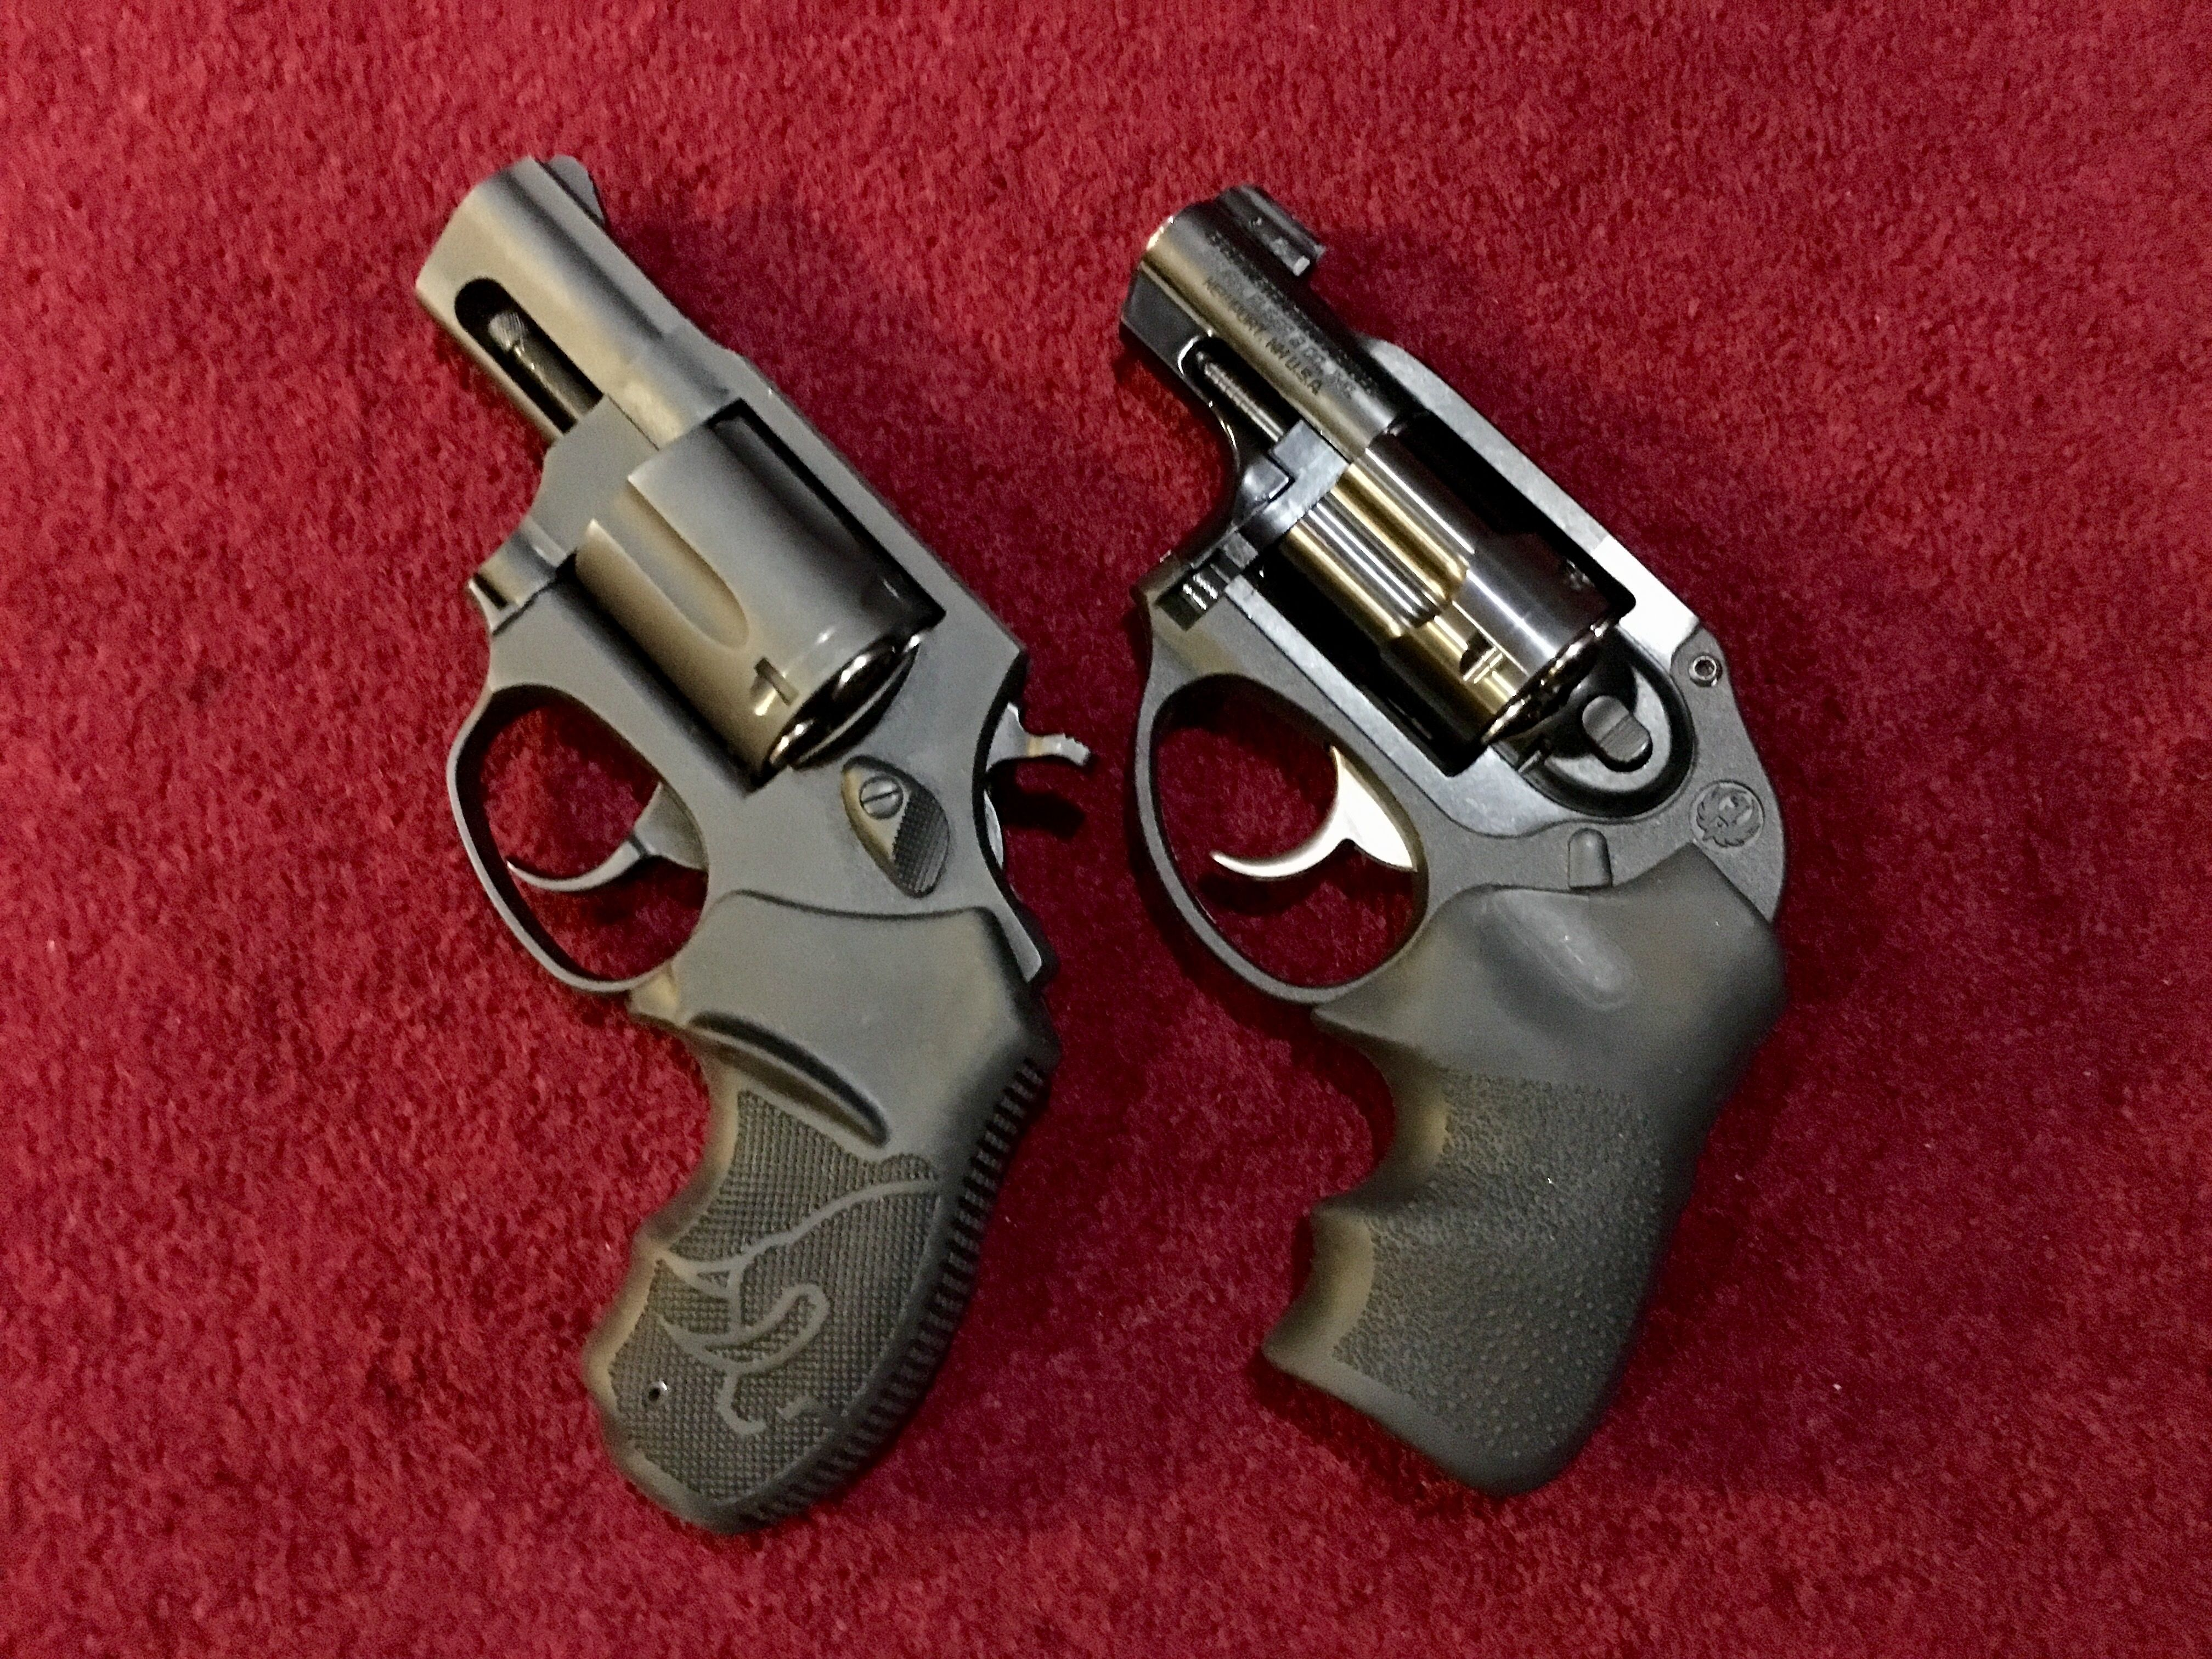 Left; Taurus 85 357 Magnum, Ruger LCR .38 +P with front night site.